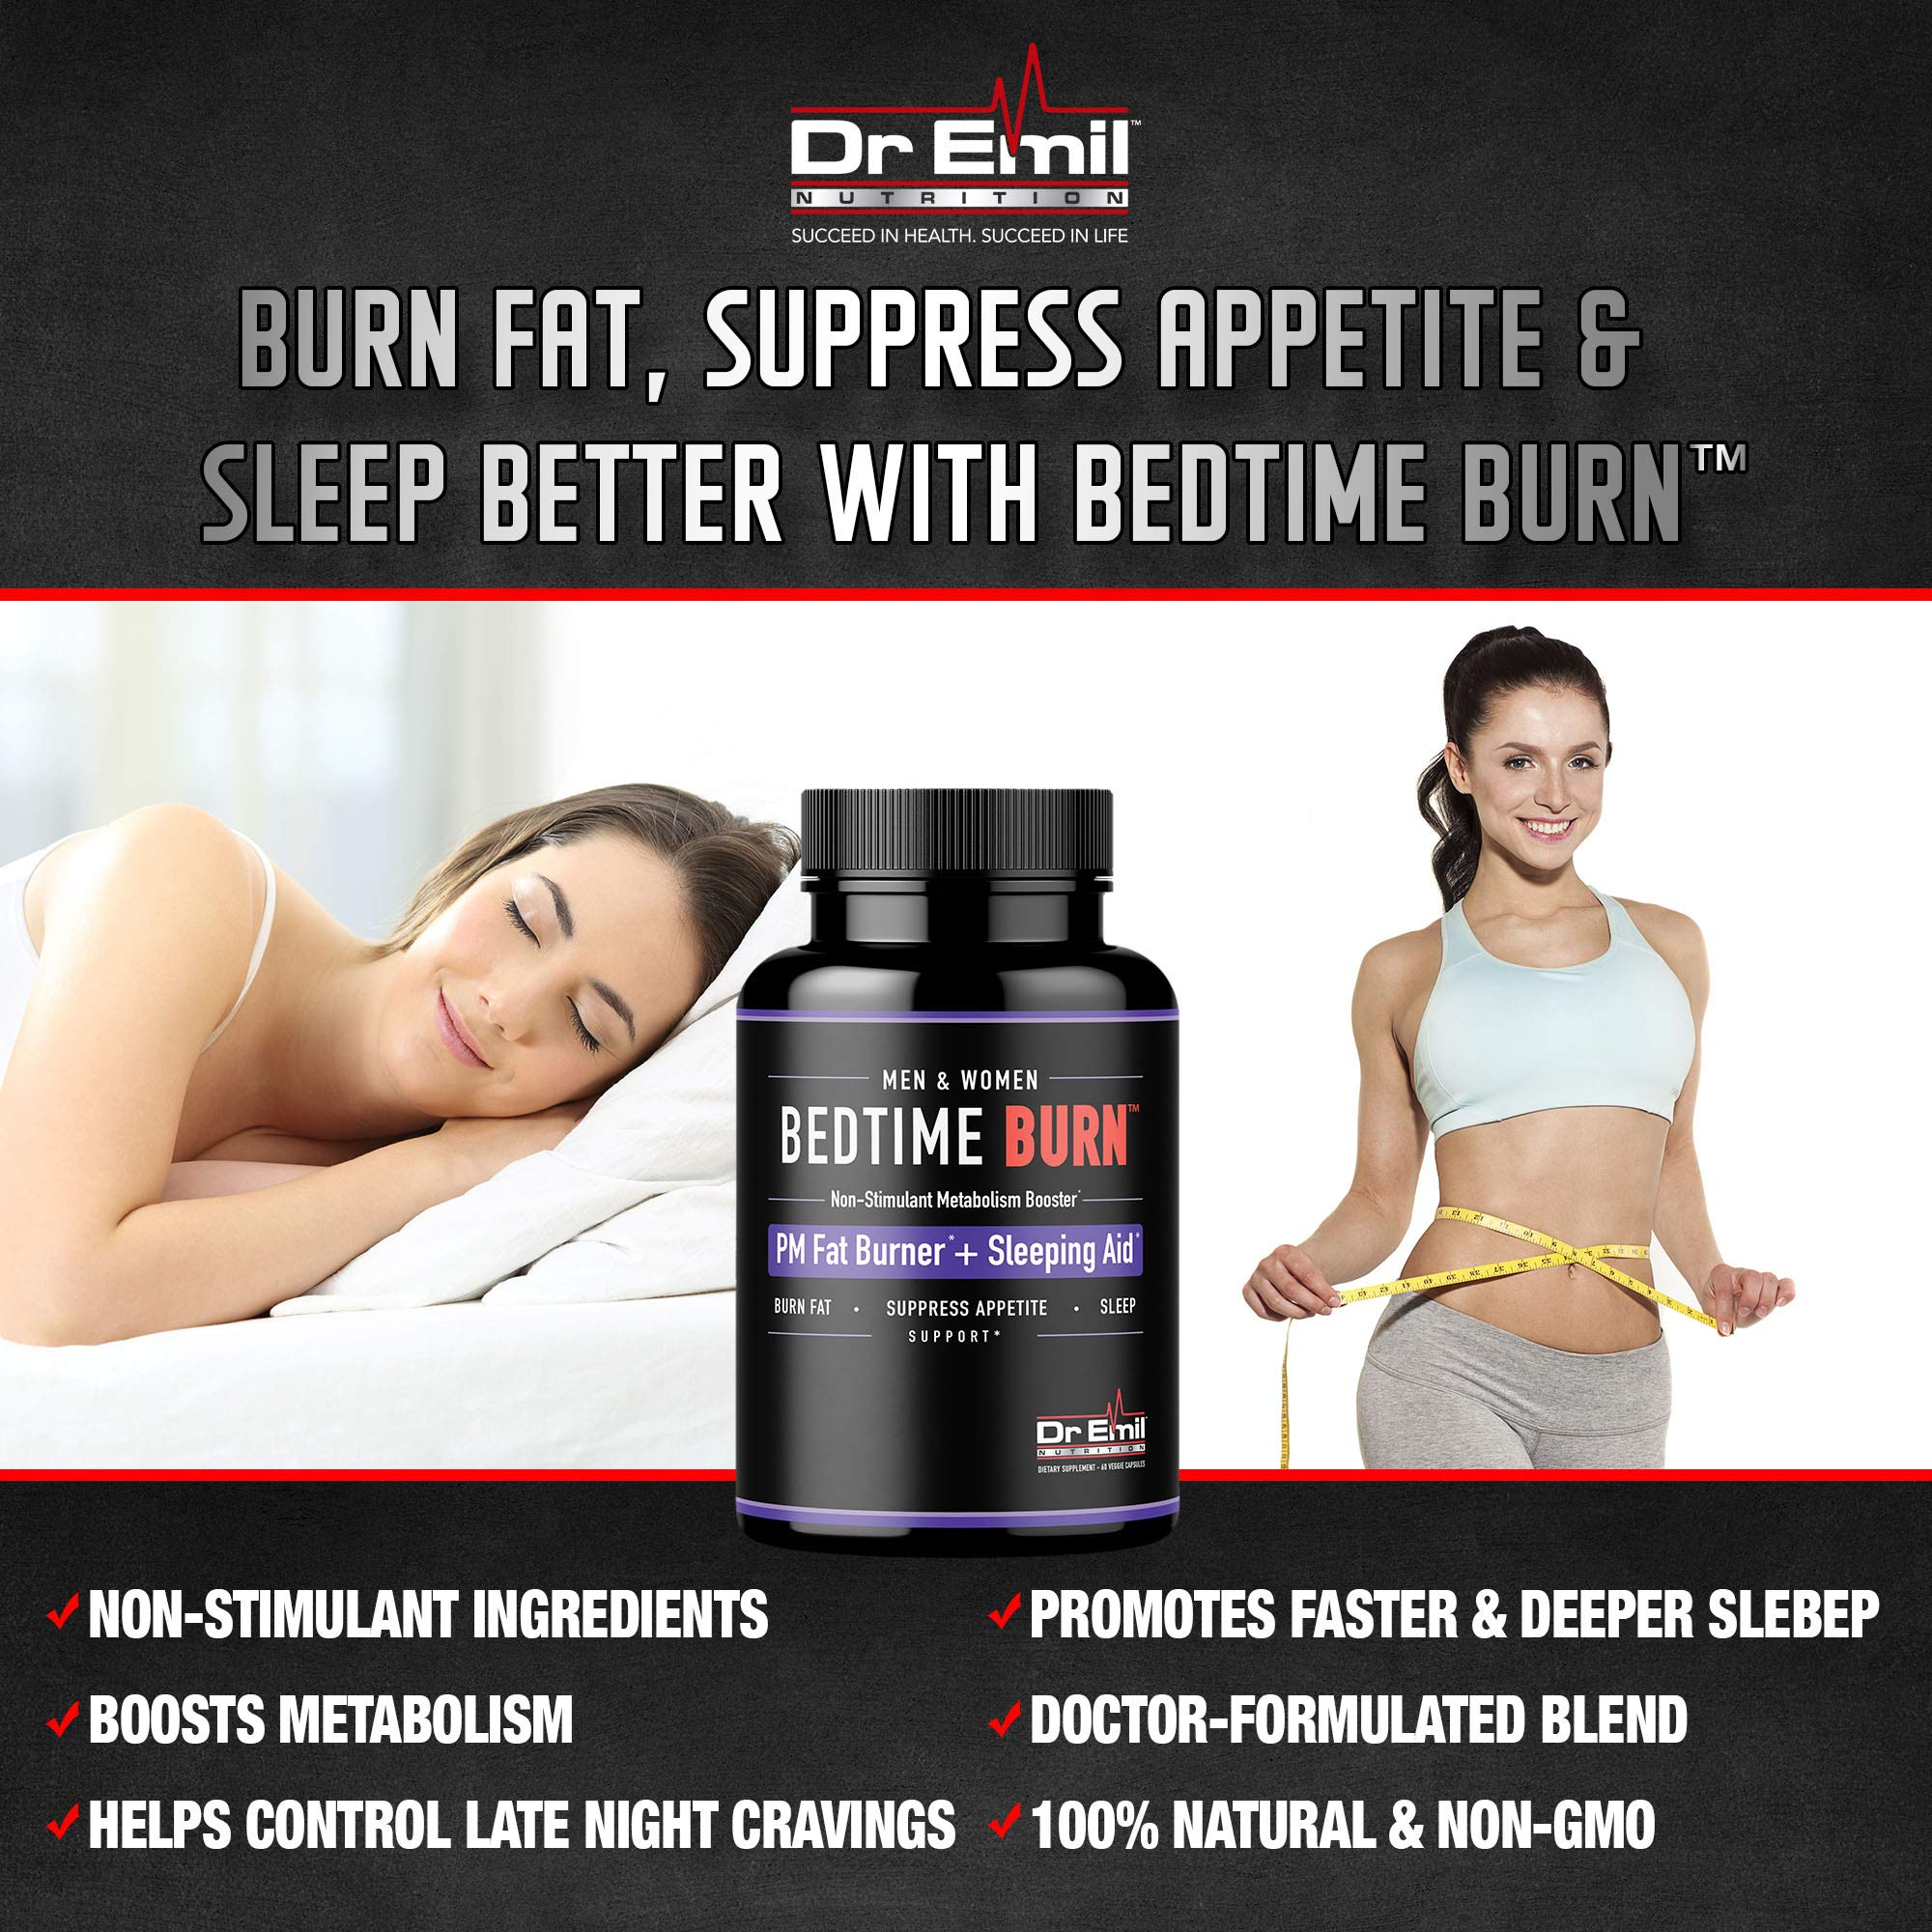 Dr. Emil - PM Fat Burner, Sleep Aid and Night Time Appetite Suppressant - Stimulant-Free Weight Loss Pills and Metabolism Booster for Men and Women (60 Vegan Diet Pills) by DR EMIL NUTRITION (Image #2)